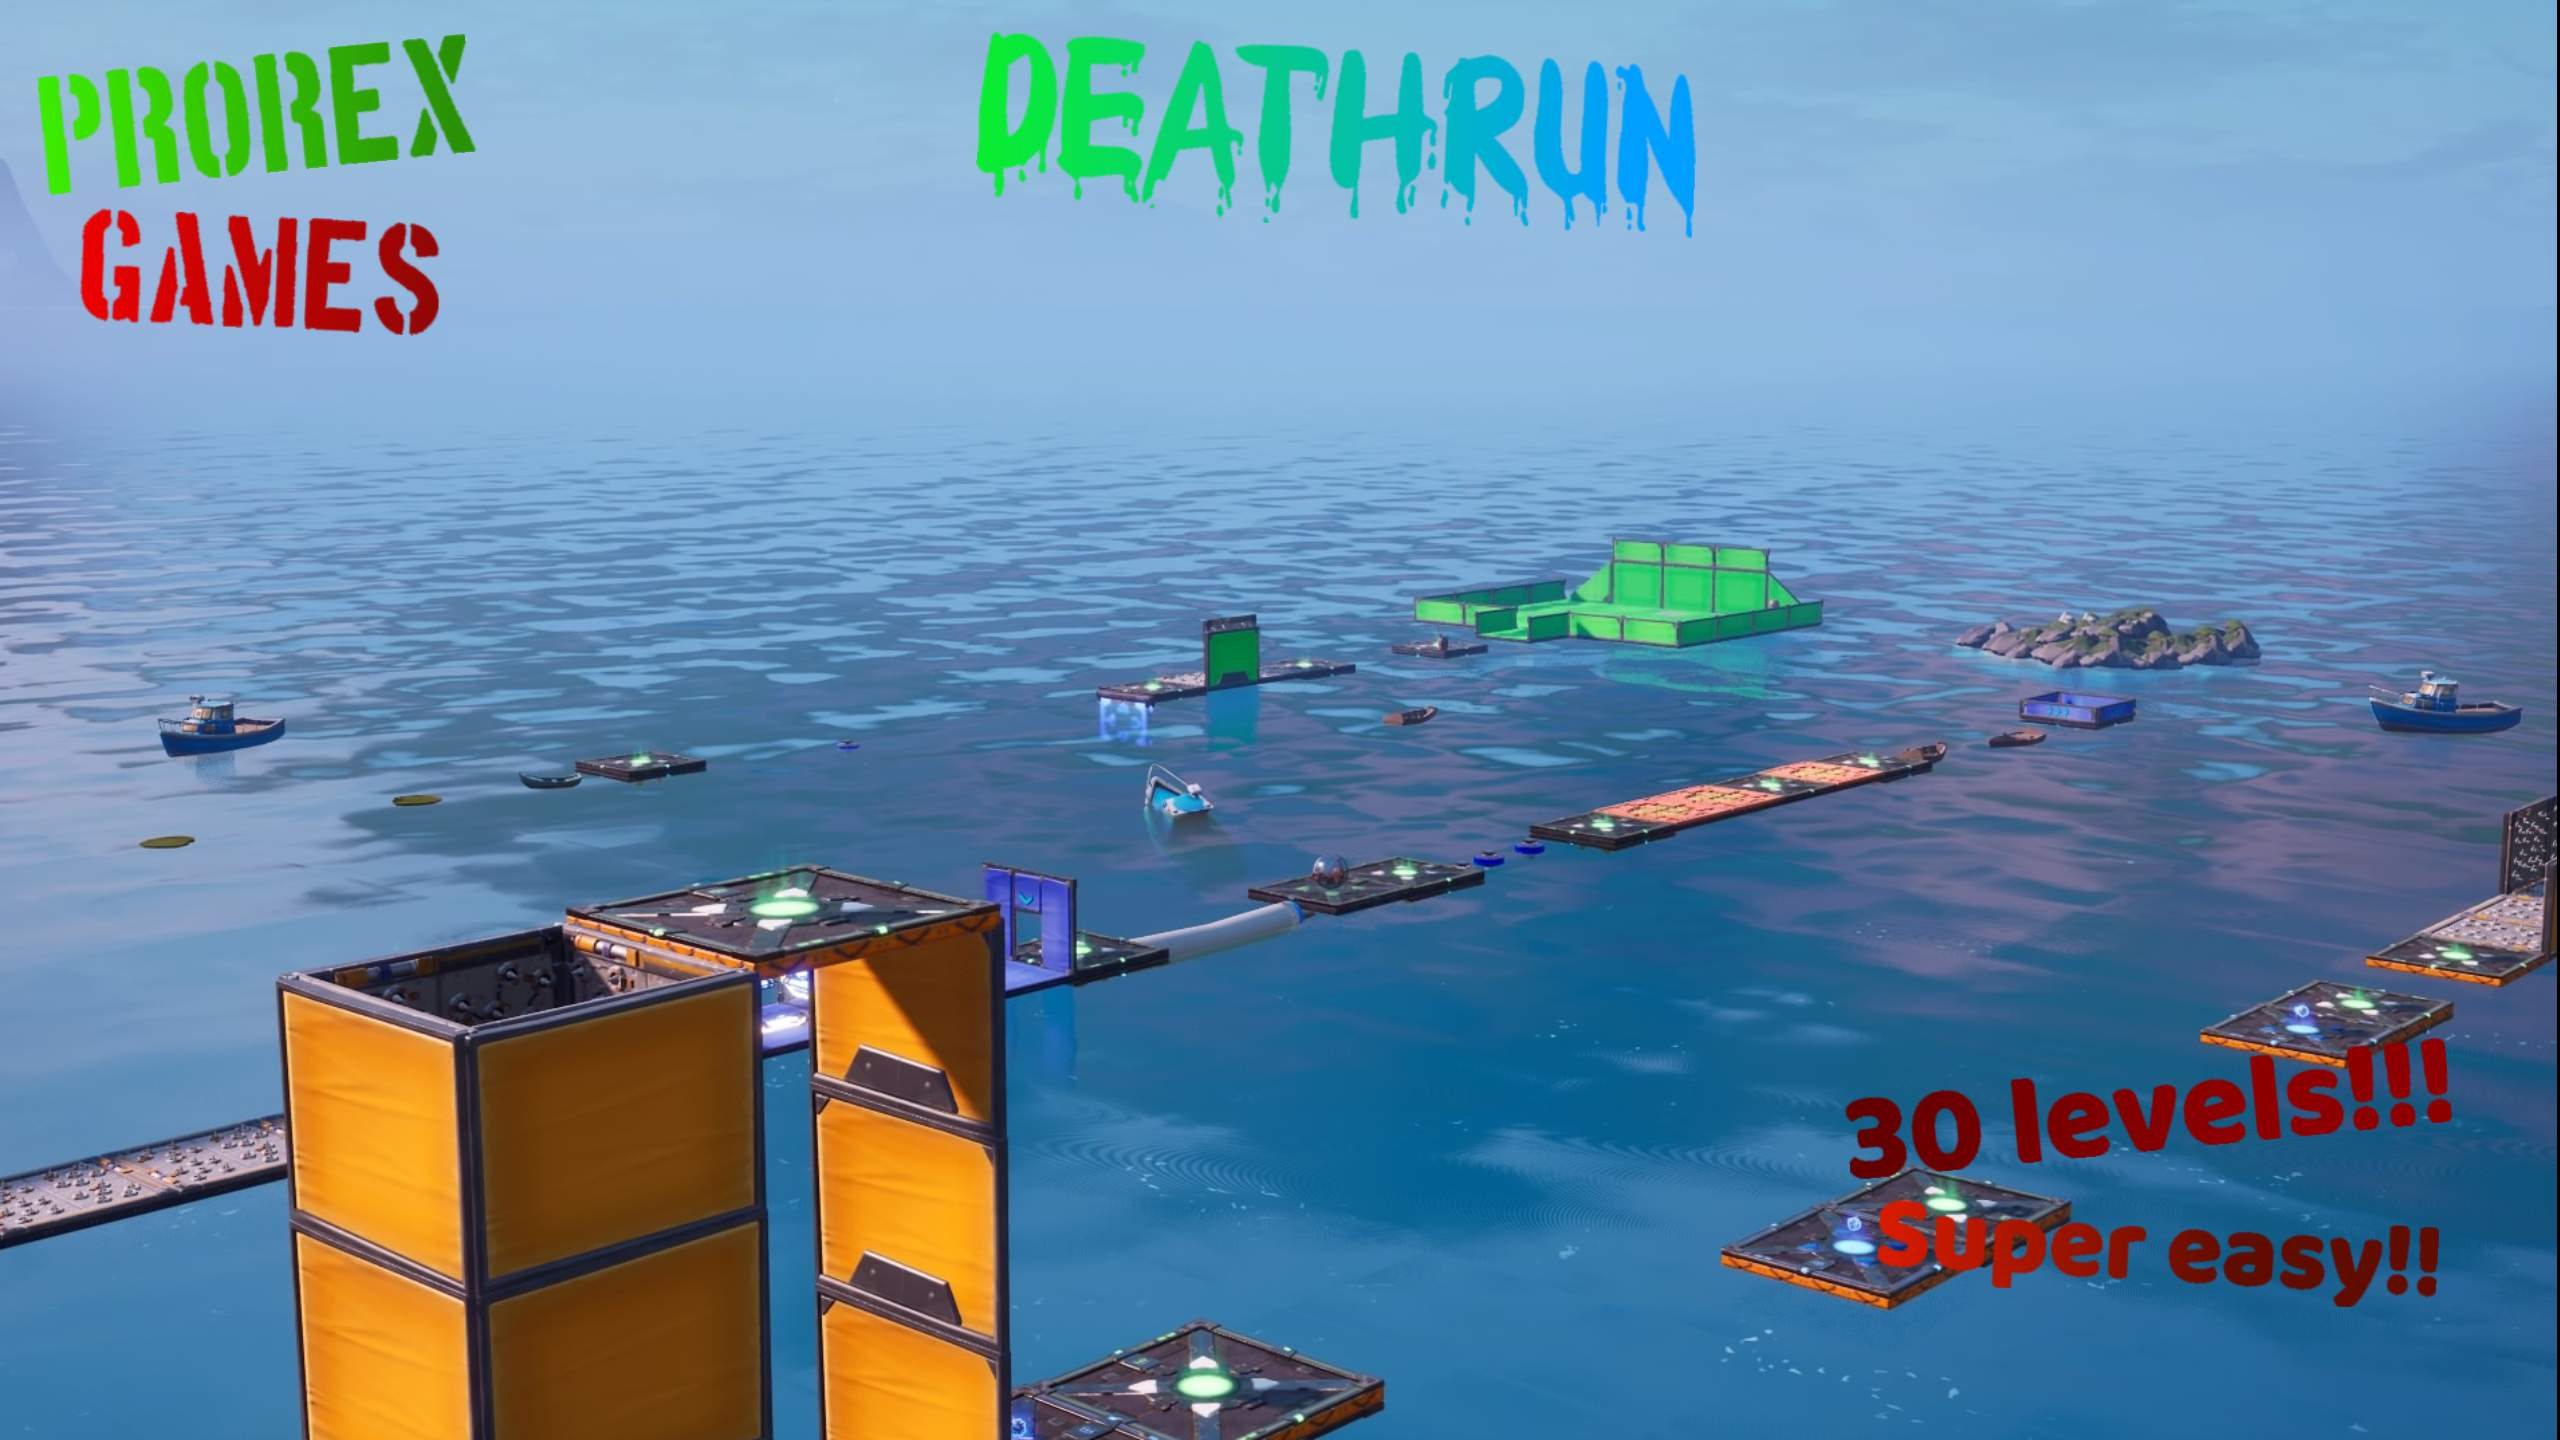 30 LEVEL EASY DEATHRUN